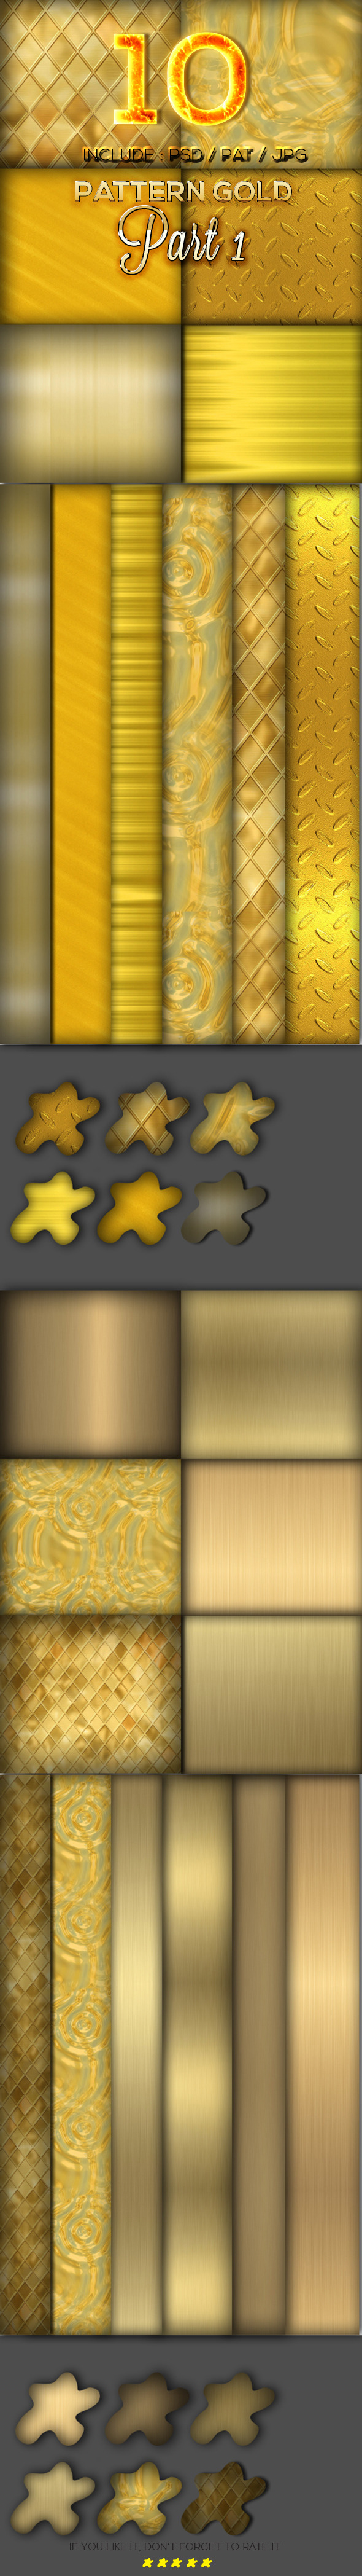 10 Gold Pattern Part 1 - Textures / Fills / Patterns Photoshop